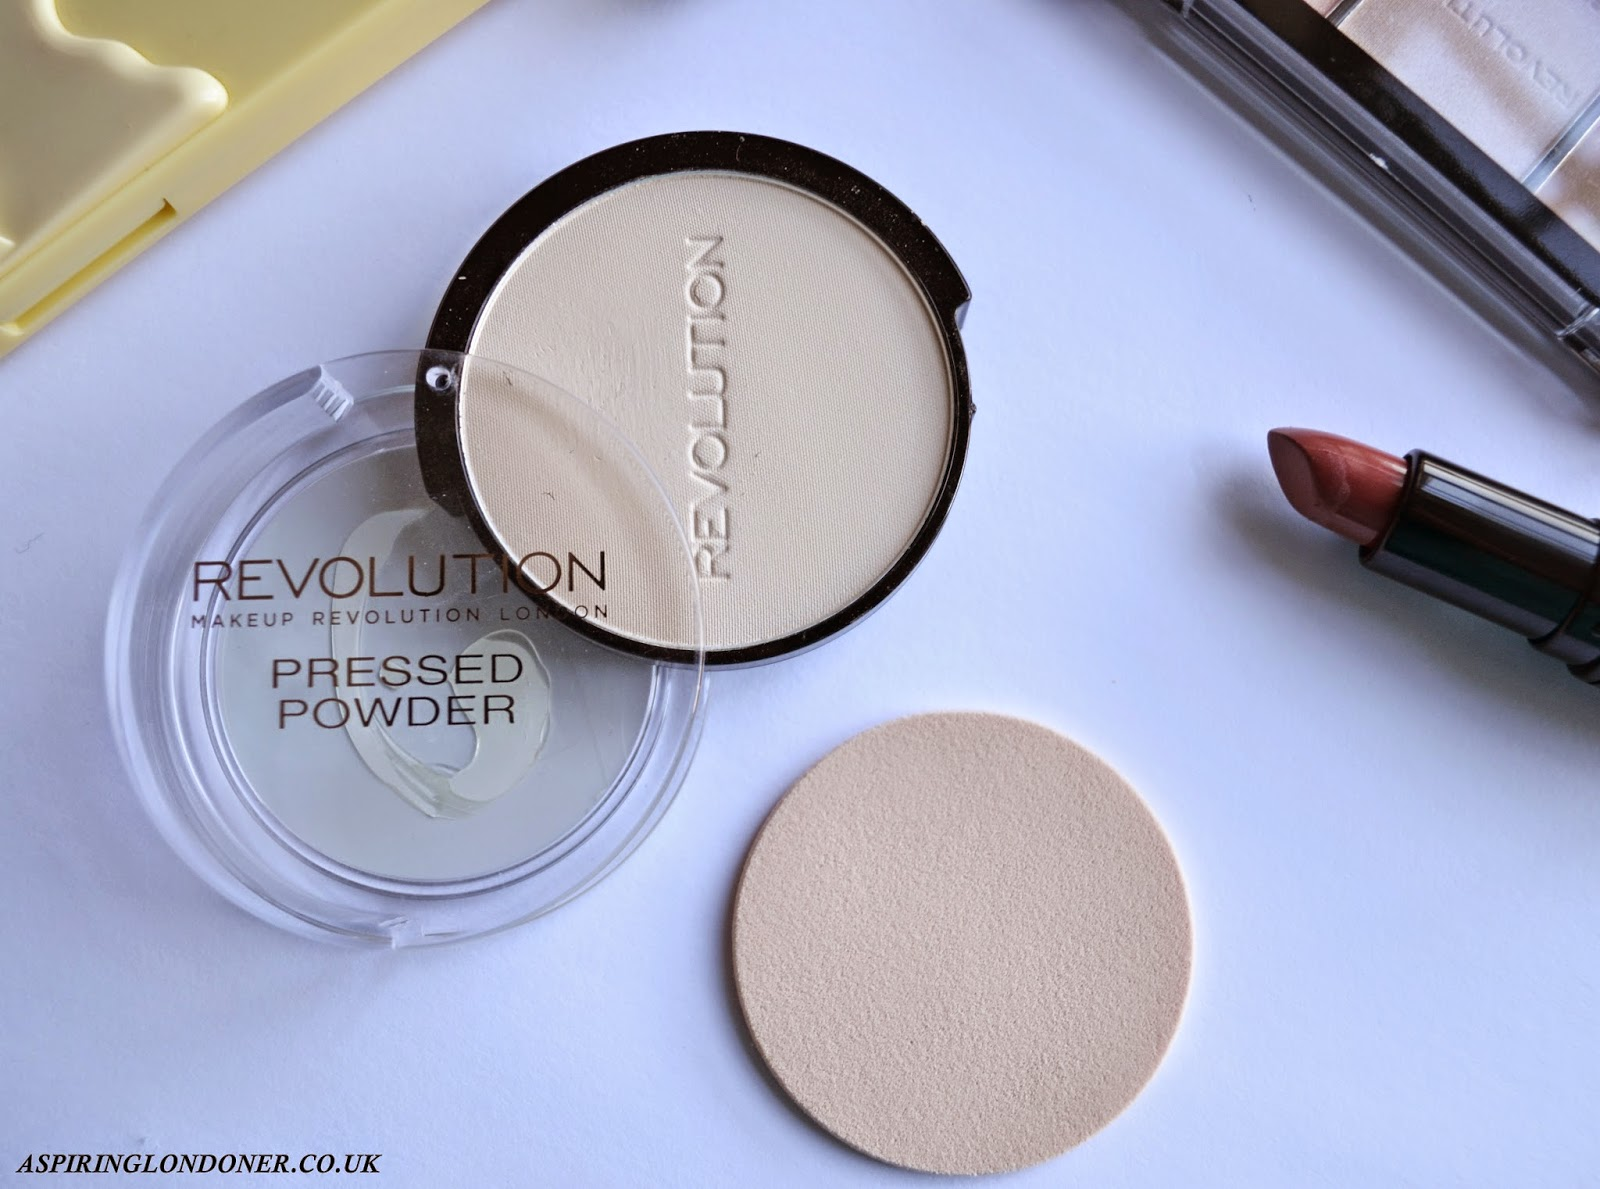 Makeup Revolution Pressed Powder Translucent Review - Aspiring Londoner